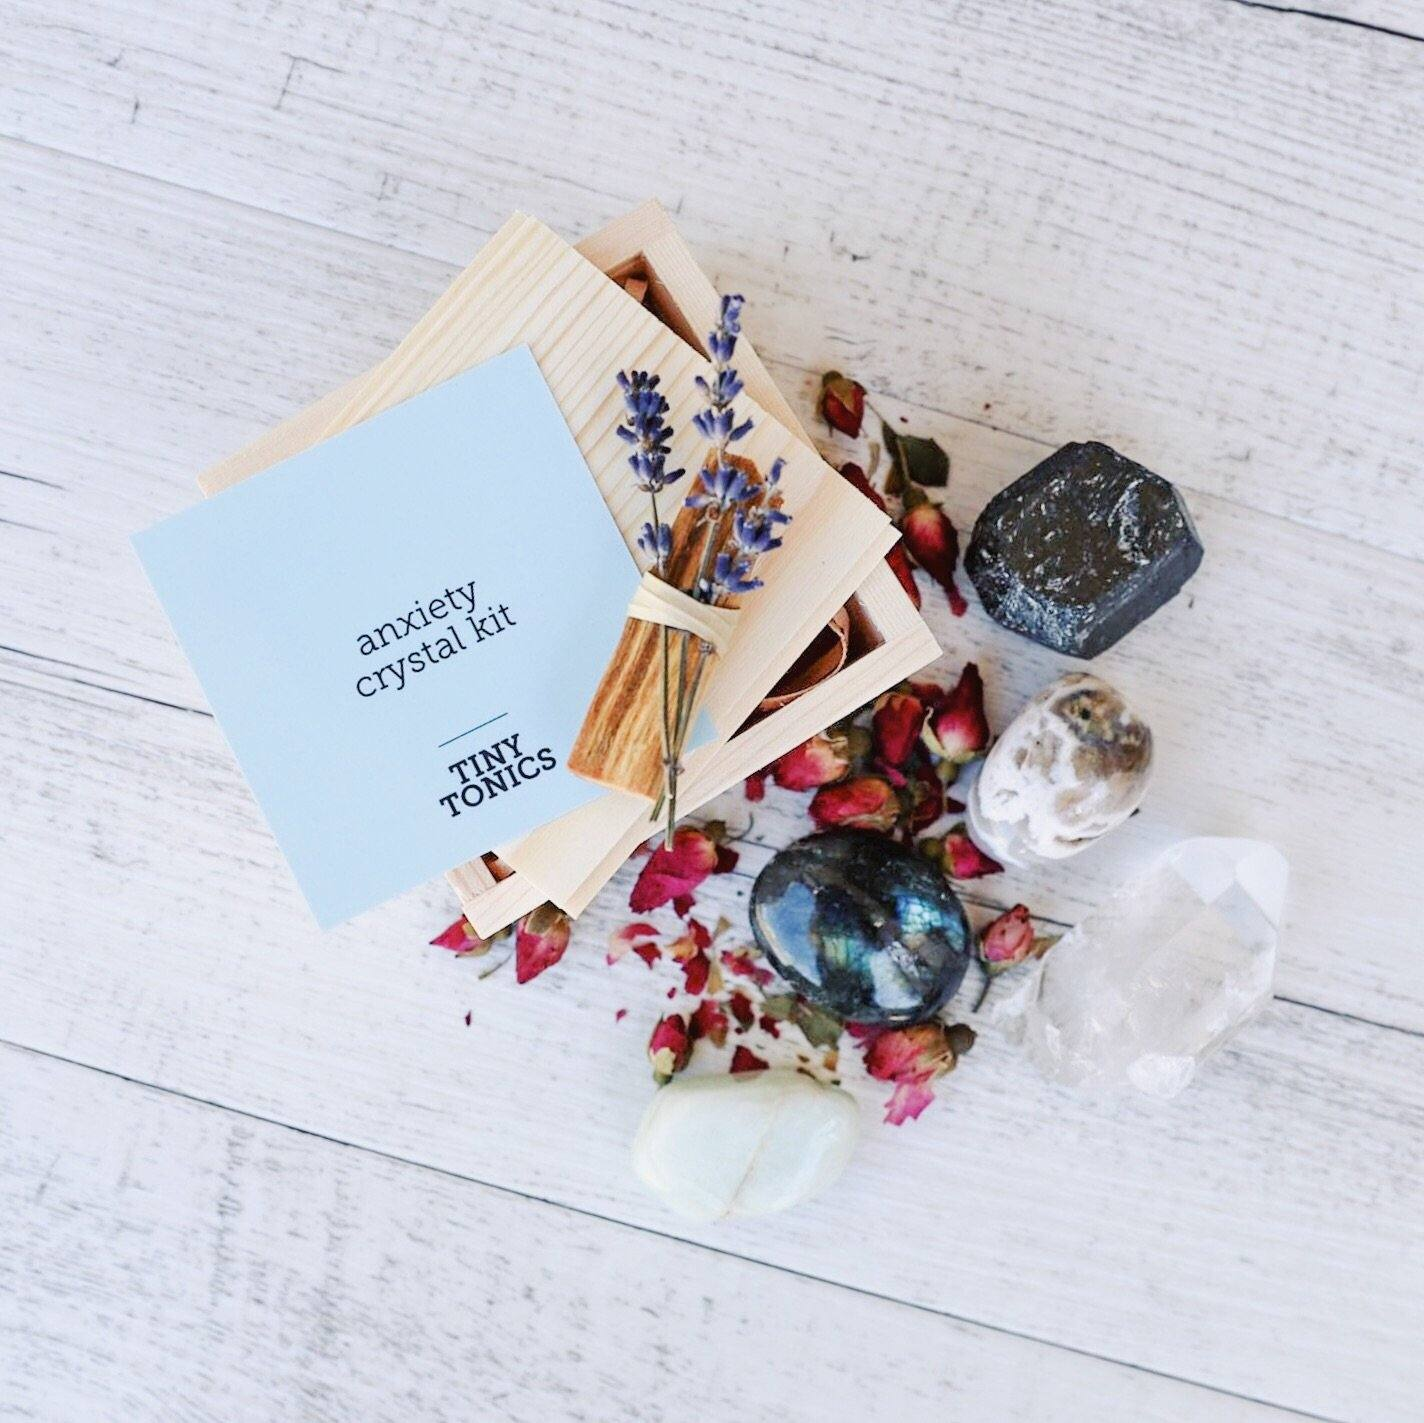 Anxiety Crystal Kit